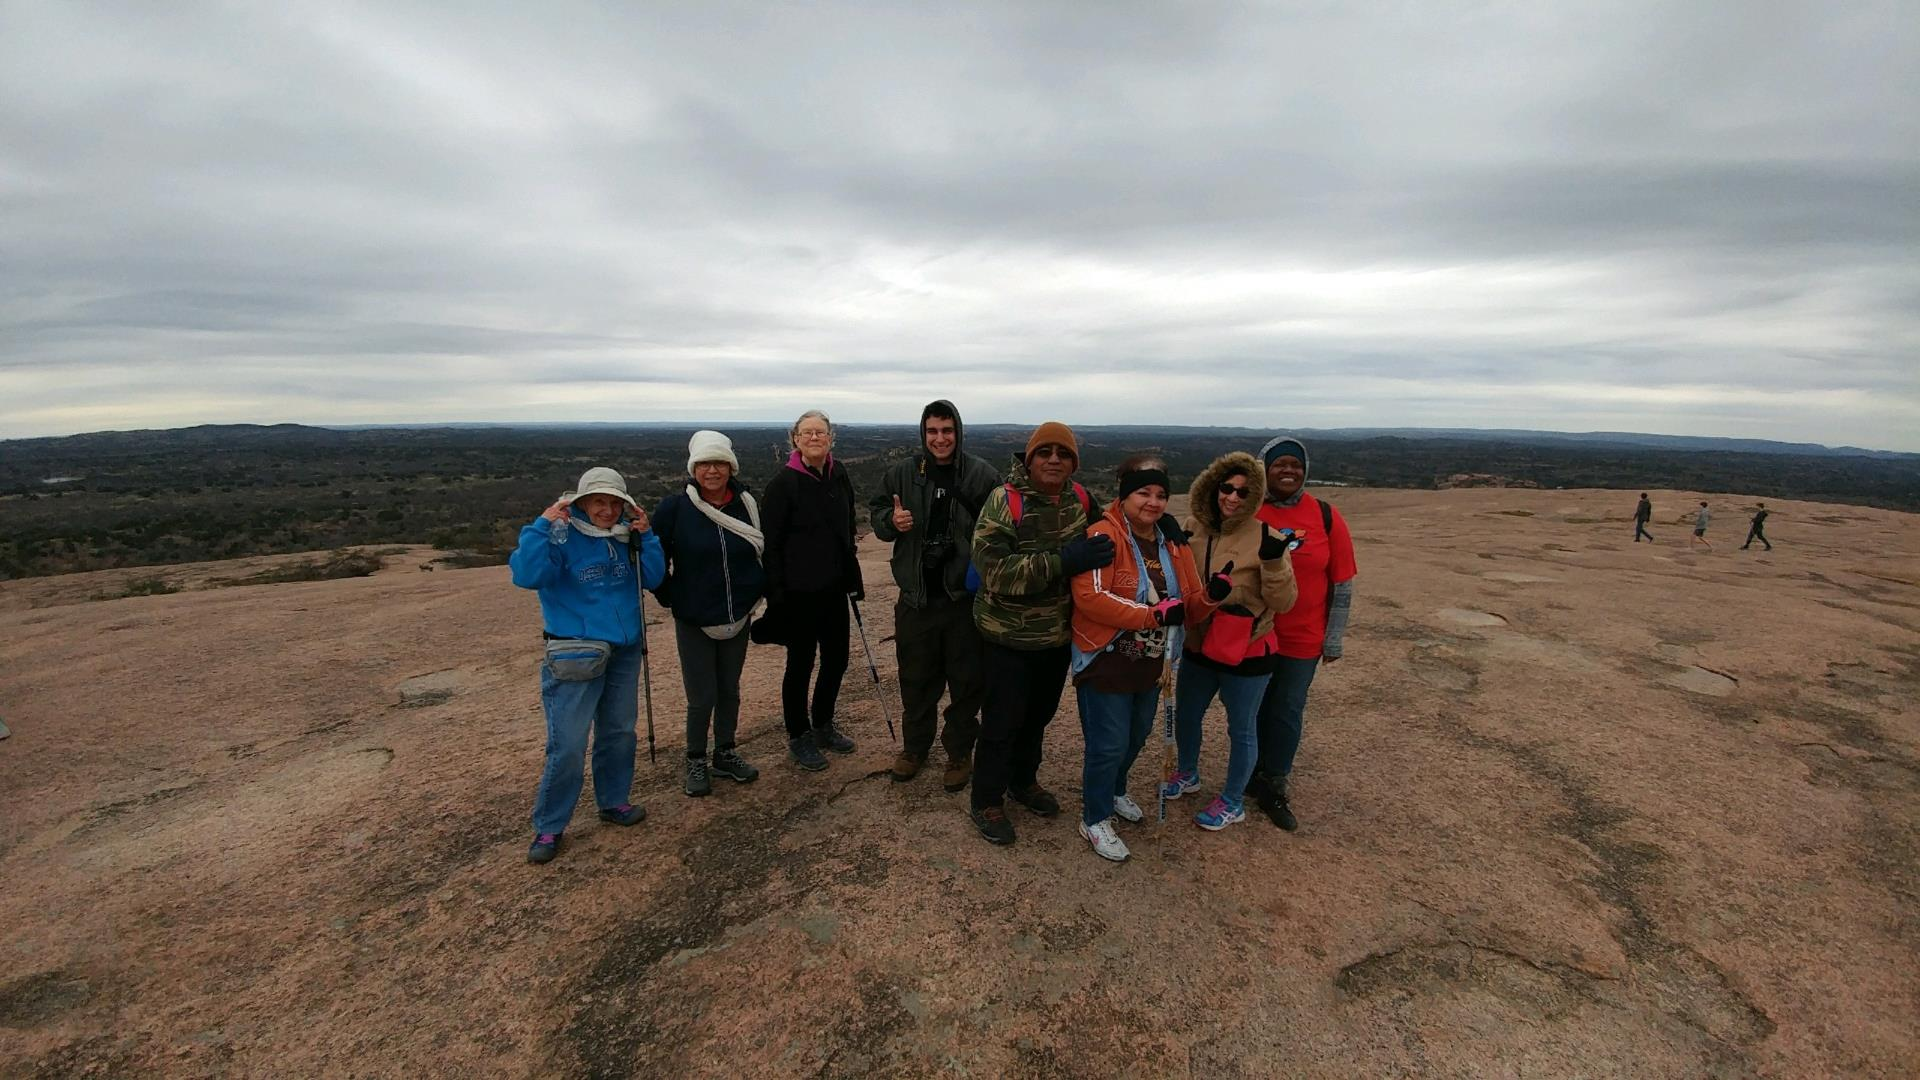 Pf Seniors at Enchanted Rock